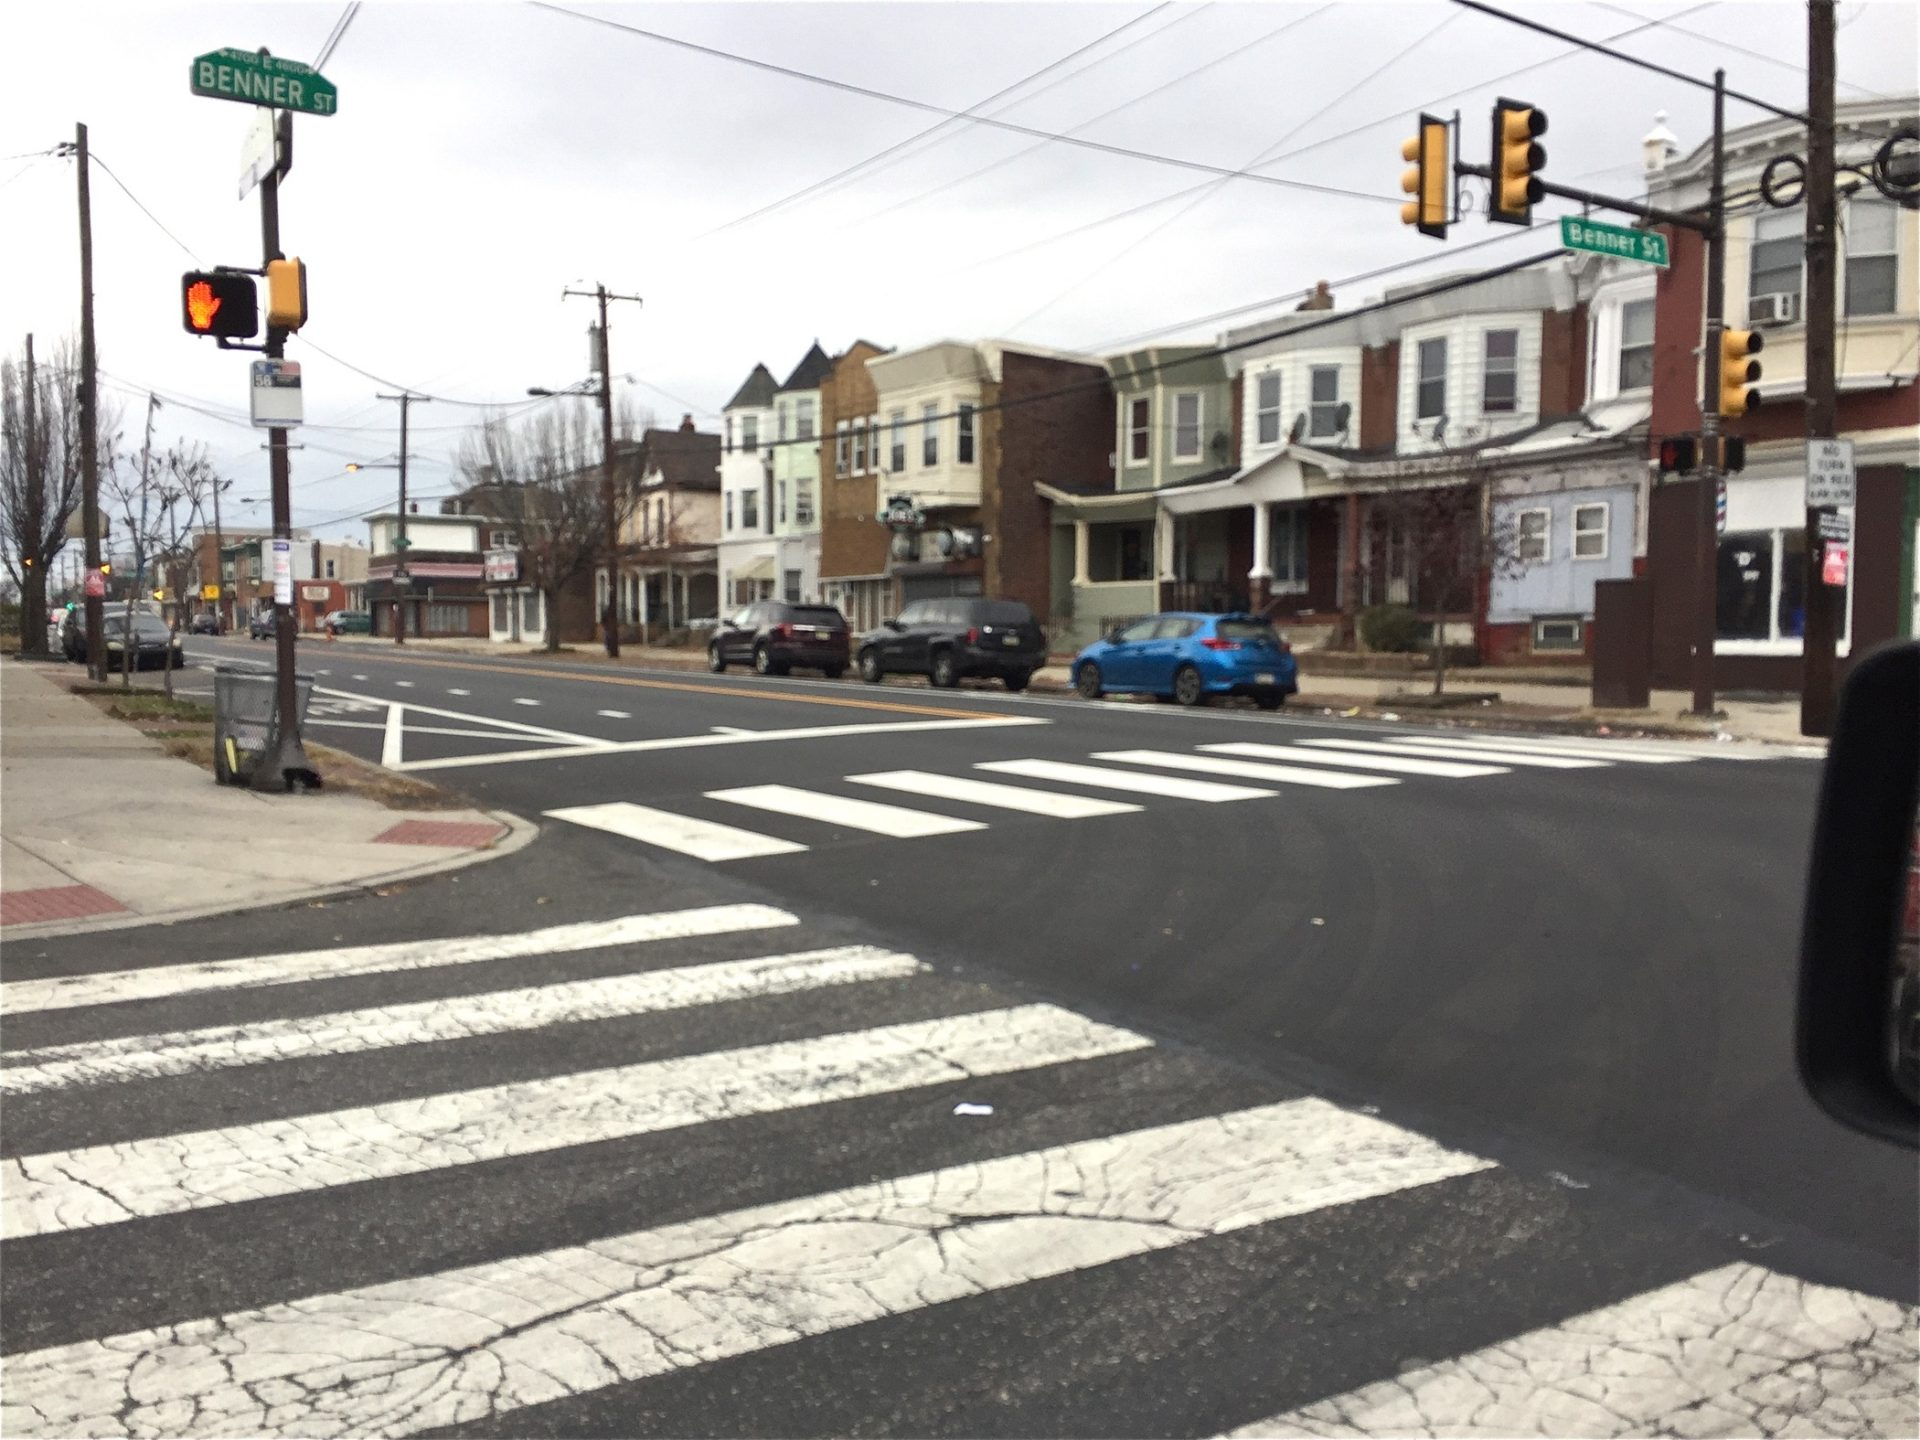 Olivia McCann, then 11, crossed this busy stretch of Torresdale Avenue alone after wandering from school in 2014.